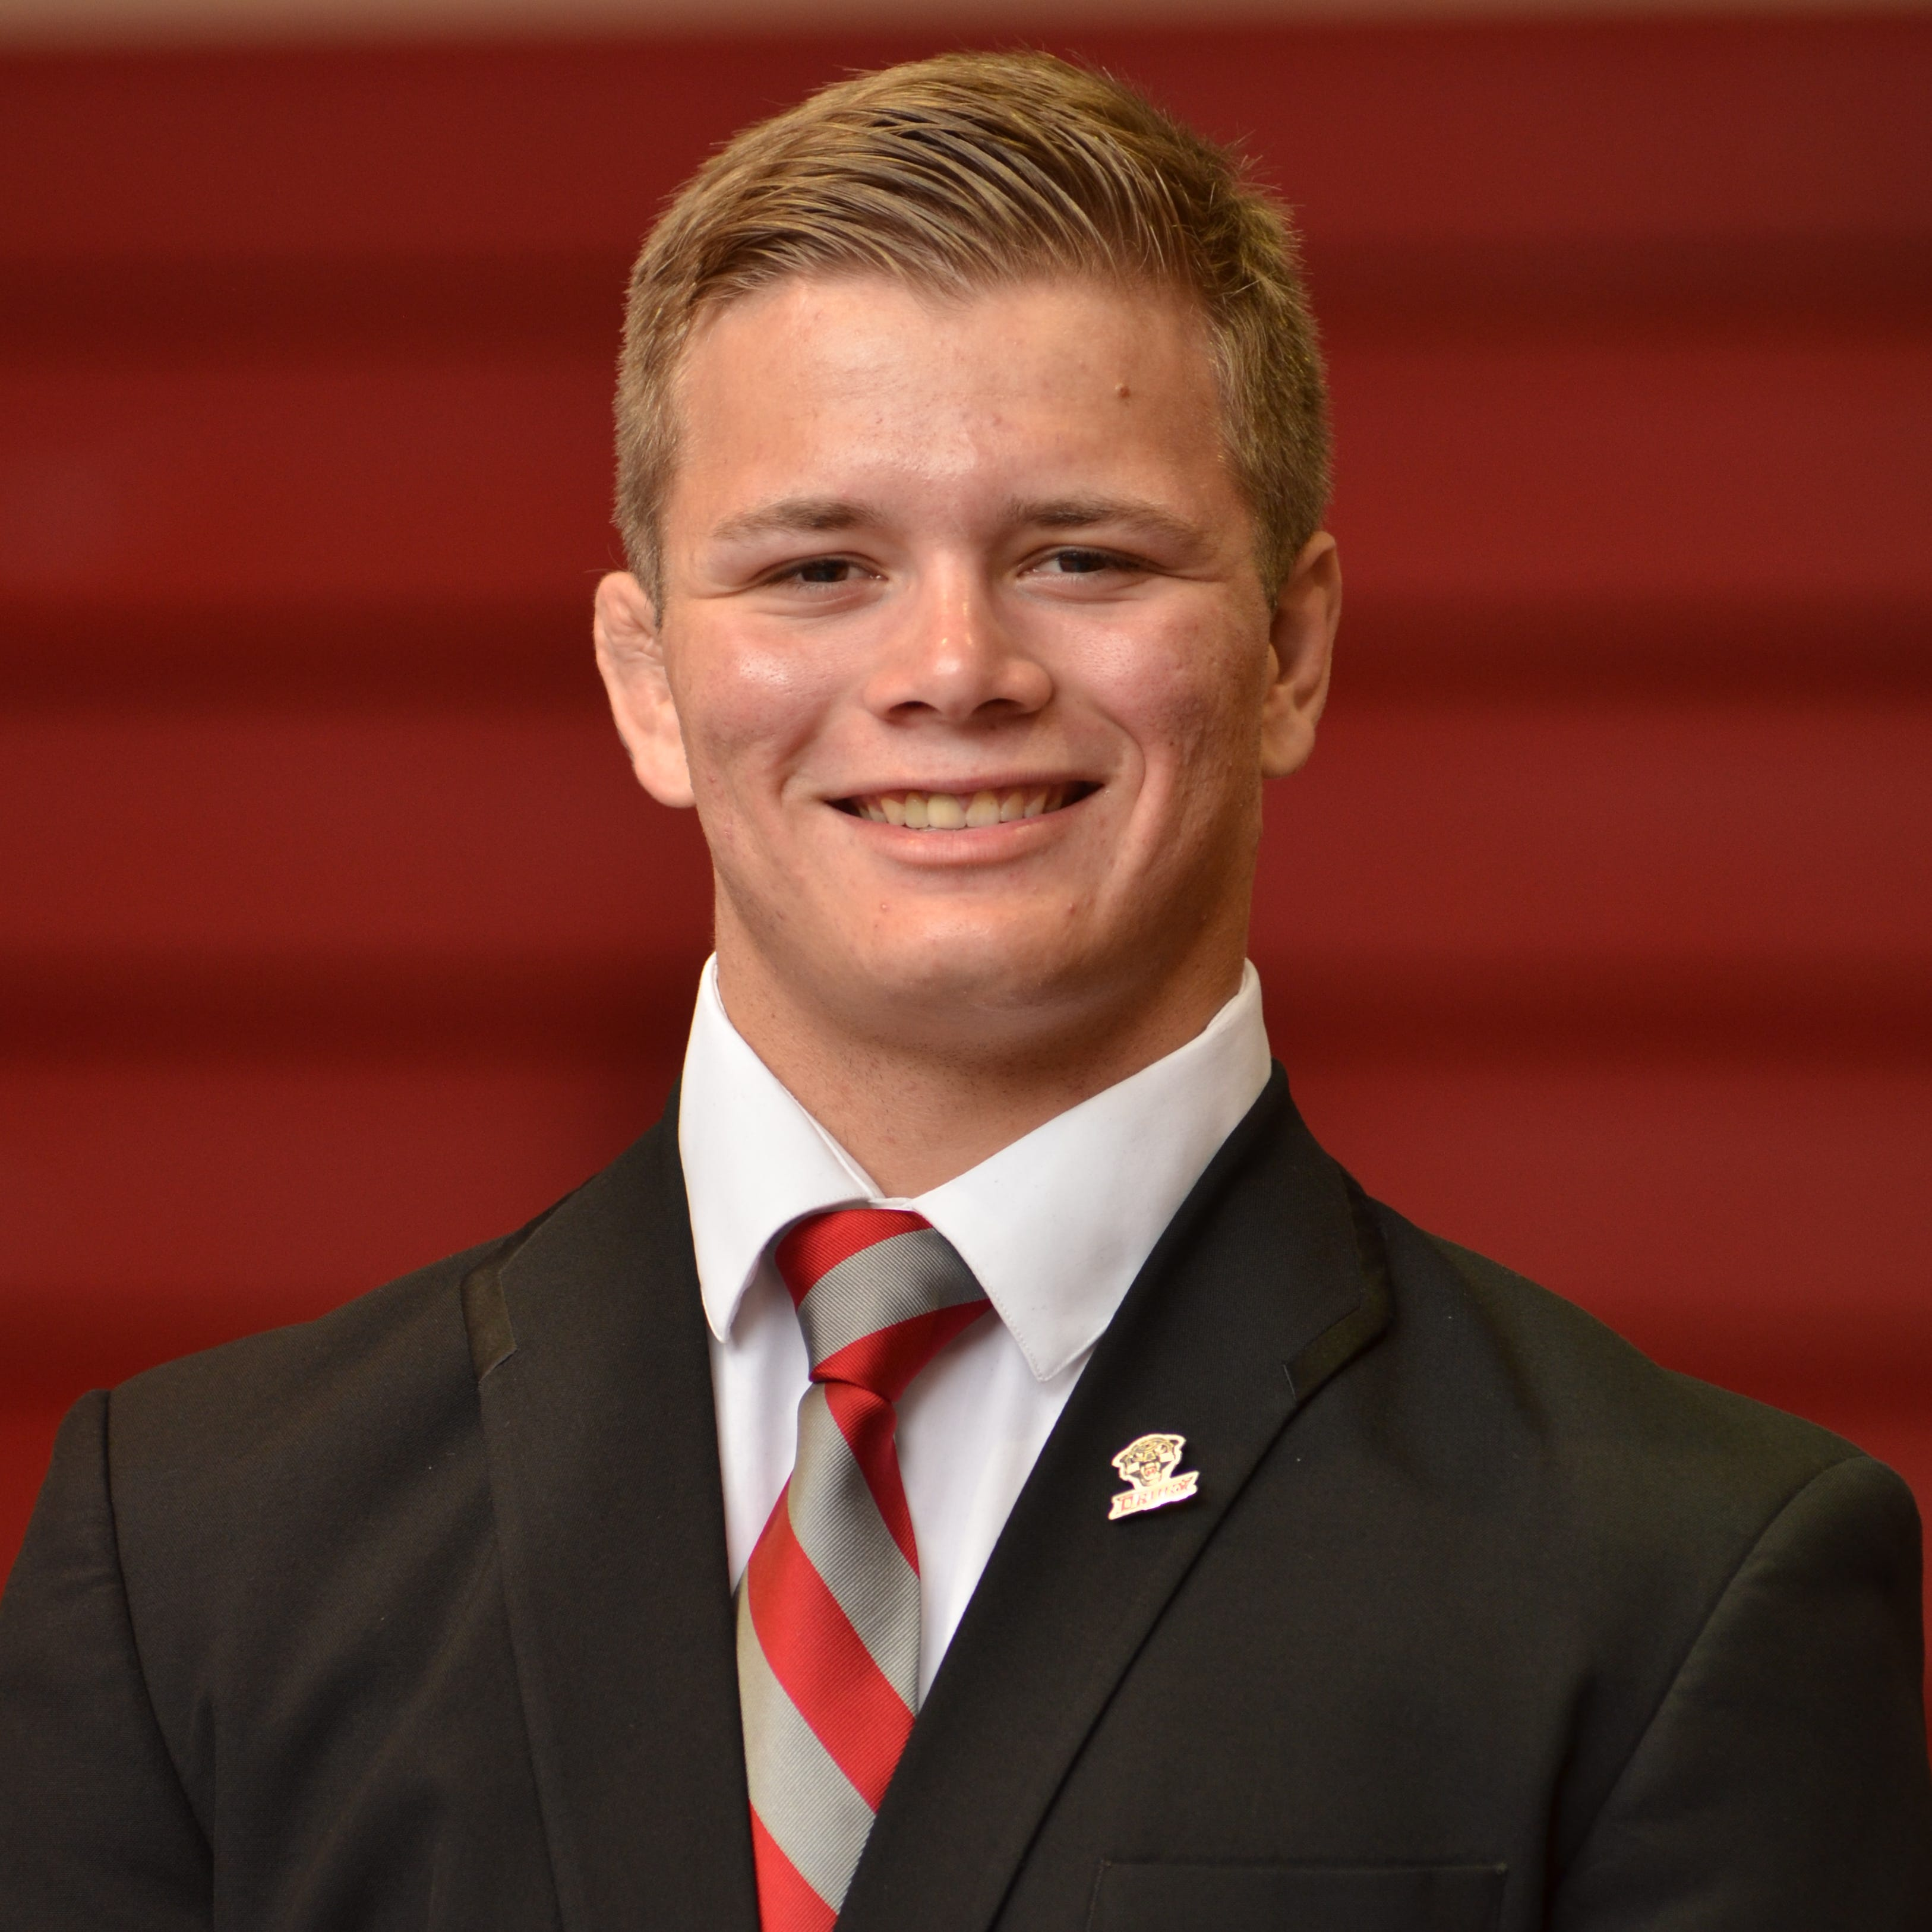 Drury wrestler, Nixa grad shot in hunting accident. 'Really good prognosis' after surgery.